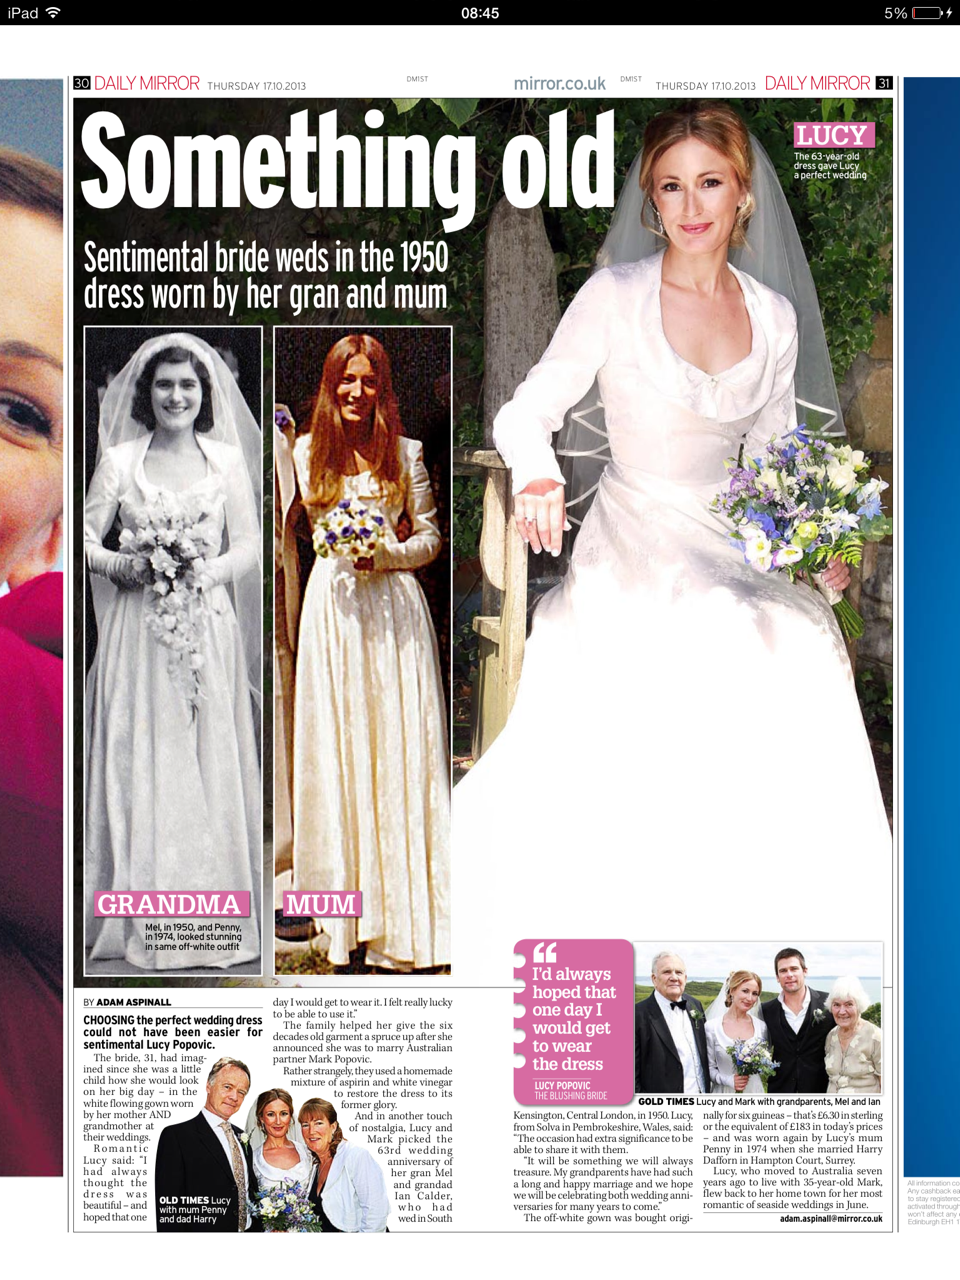 Daily Mirror spread by Harriet Sime